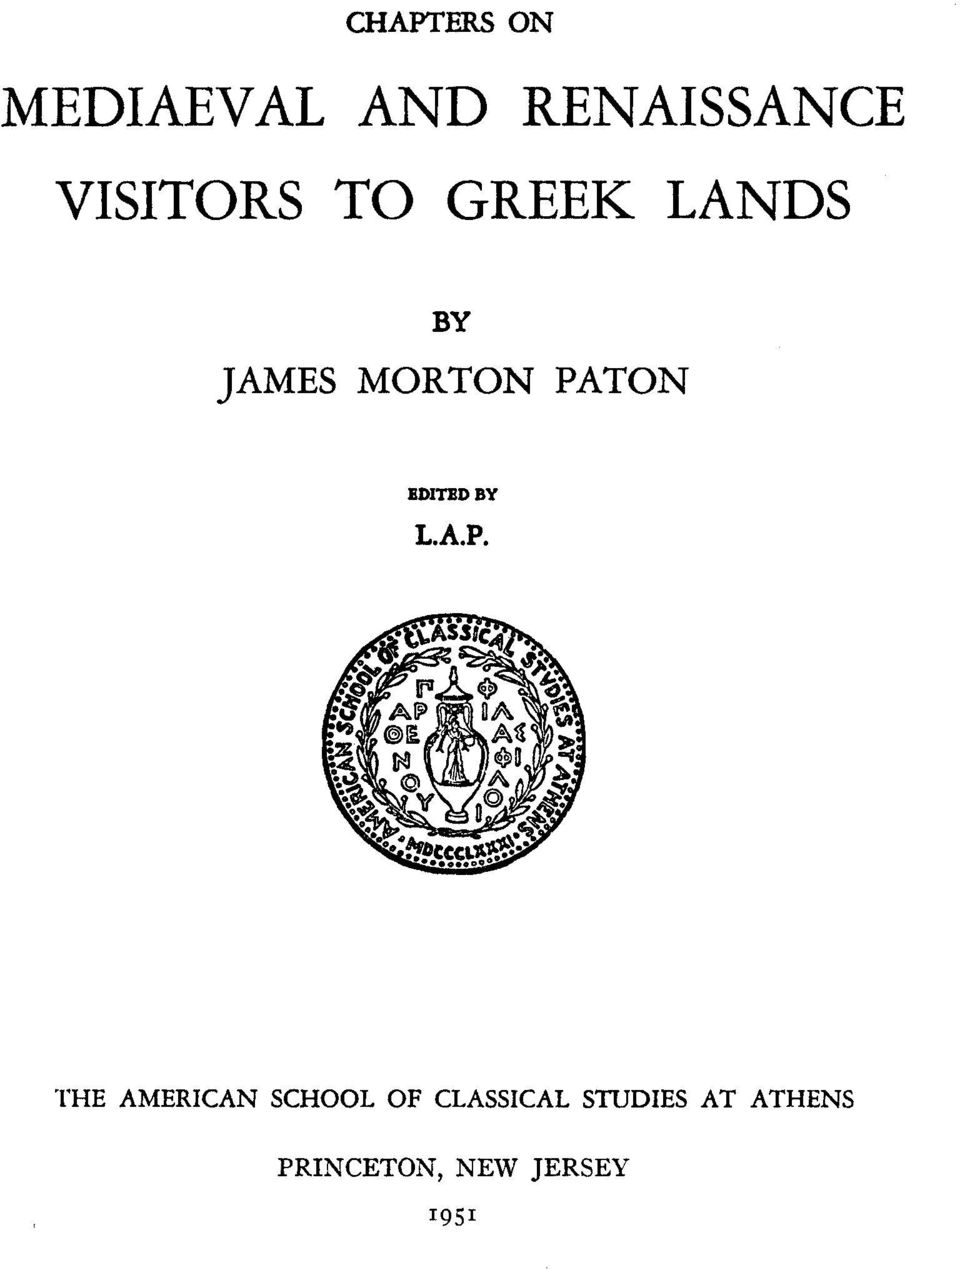 PATON EDITED BY L.A.P. THE AMERICAN SCHOOL